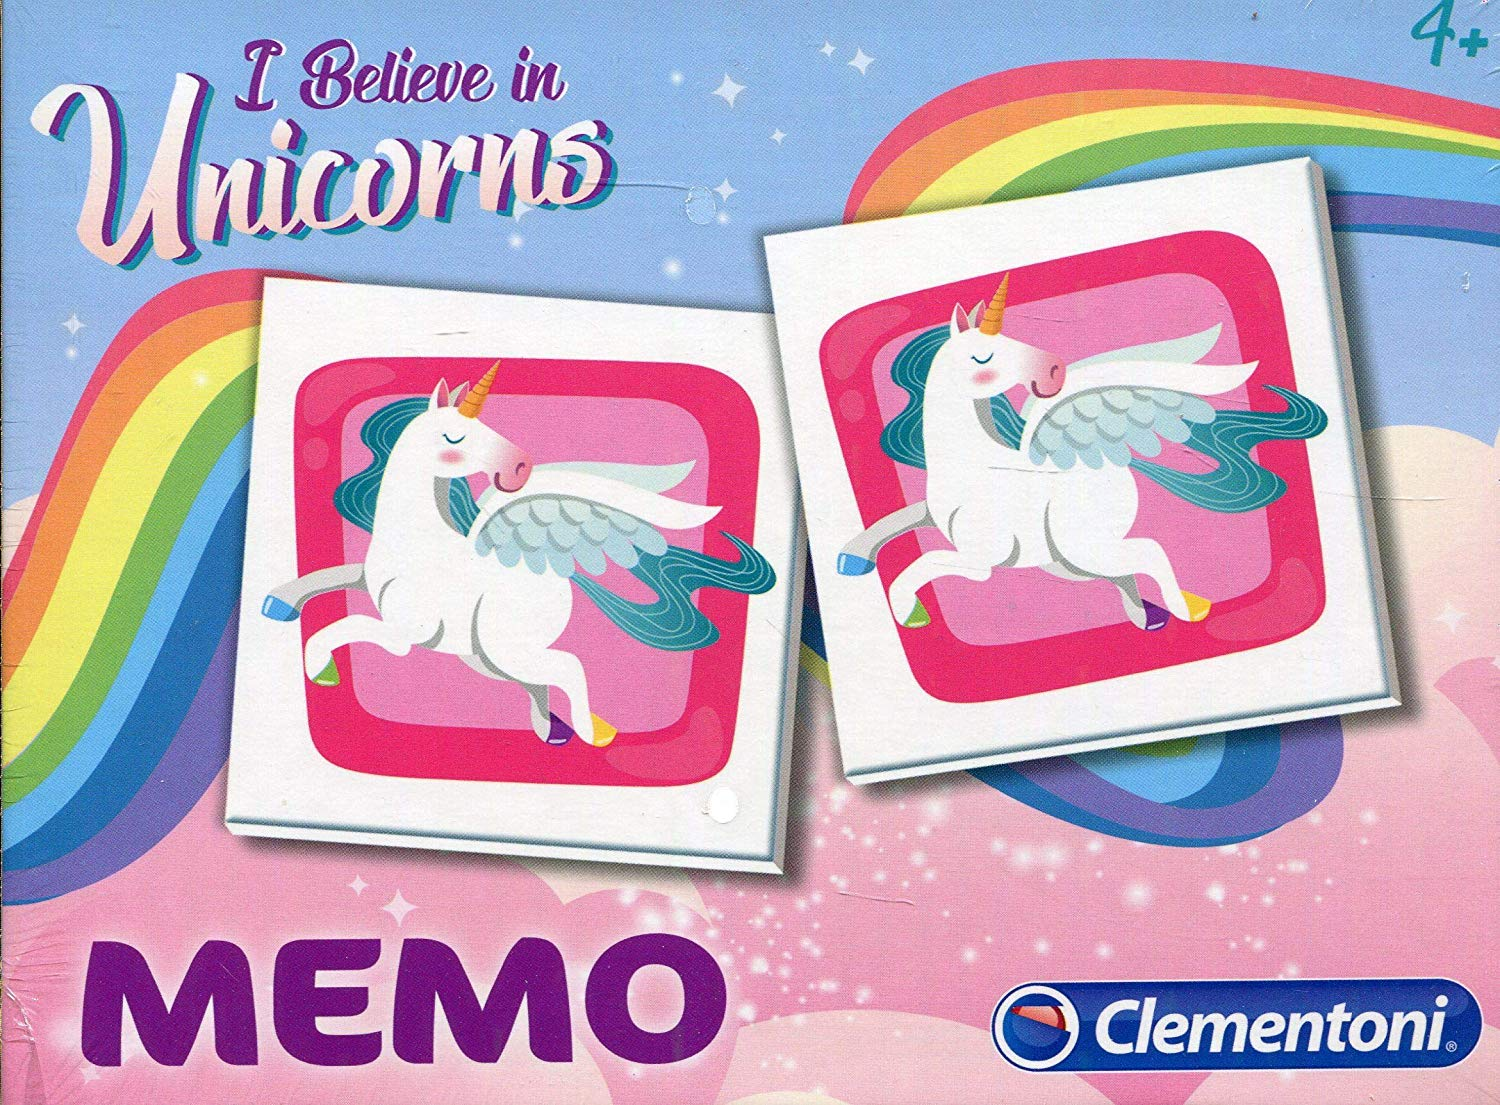 Clementoni – Memo Pocket Unicorn, 18032, multi-coloured